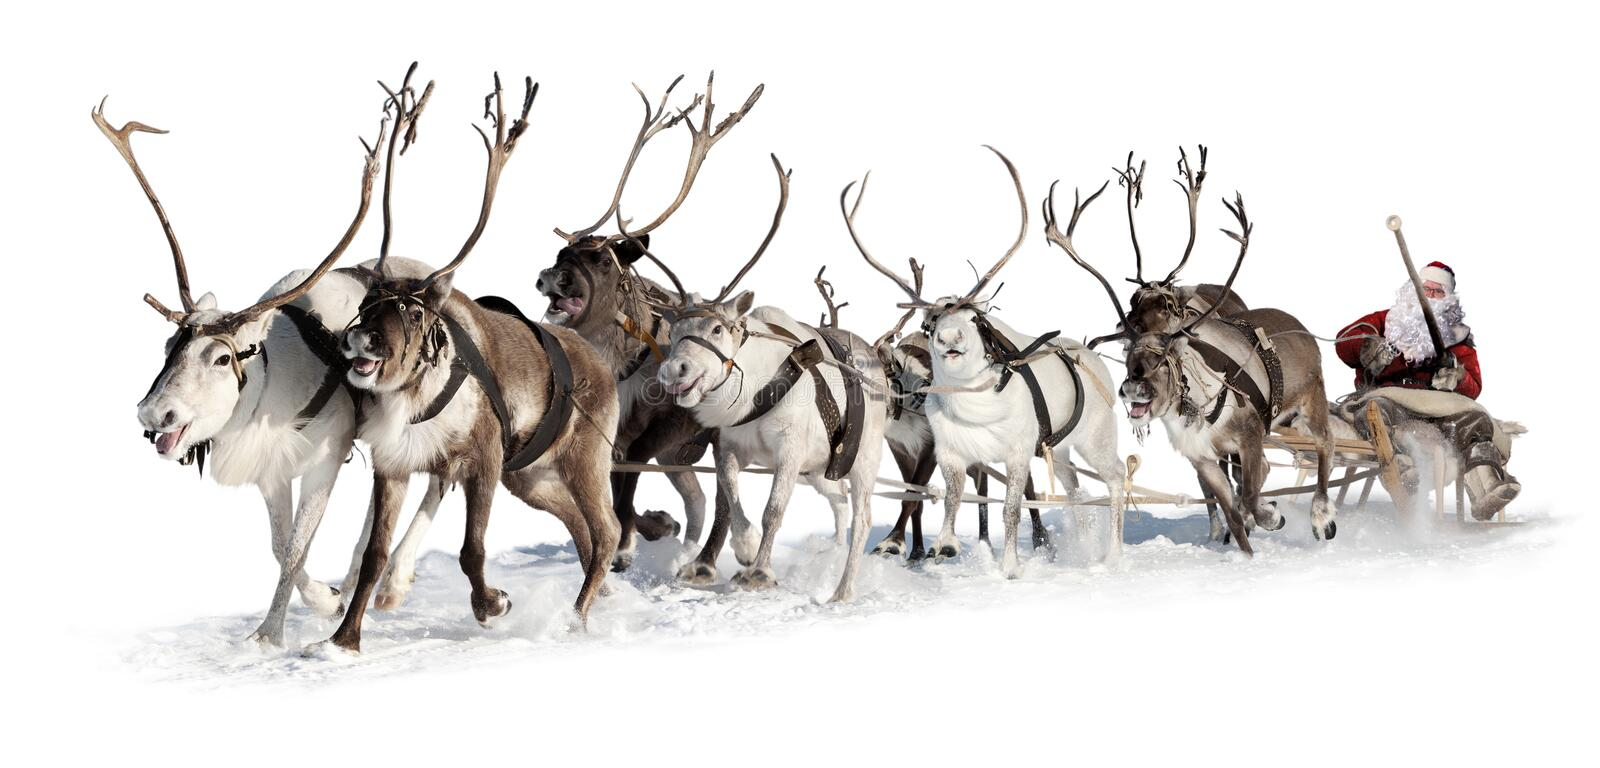 Santa Claus in a sleigh. Santa Claus rides in a reindeer sleigh. He hastens to give gifts before Christmas. This is fast team of eight deer royalty free stock photography